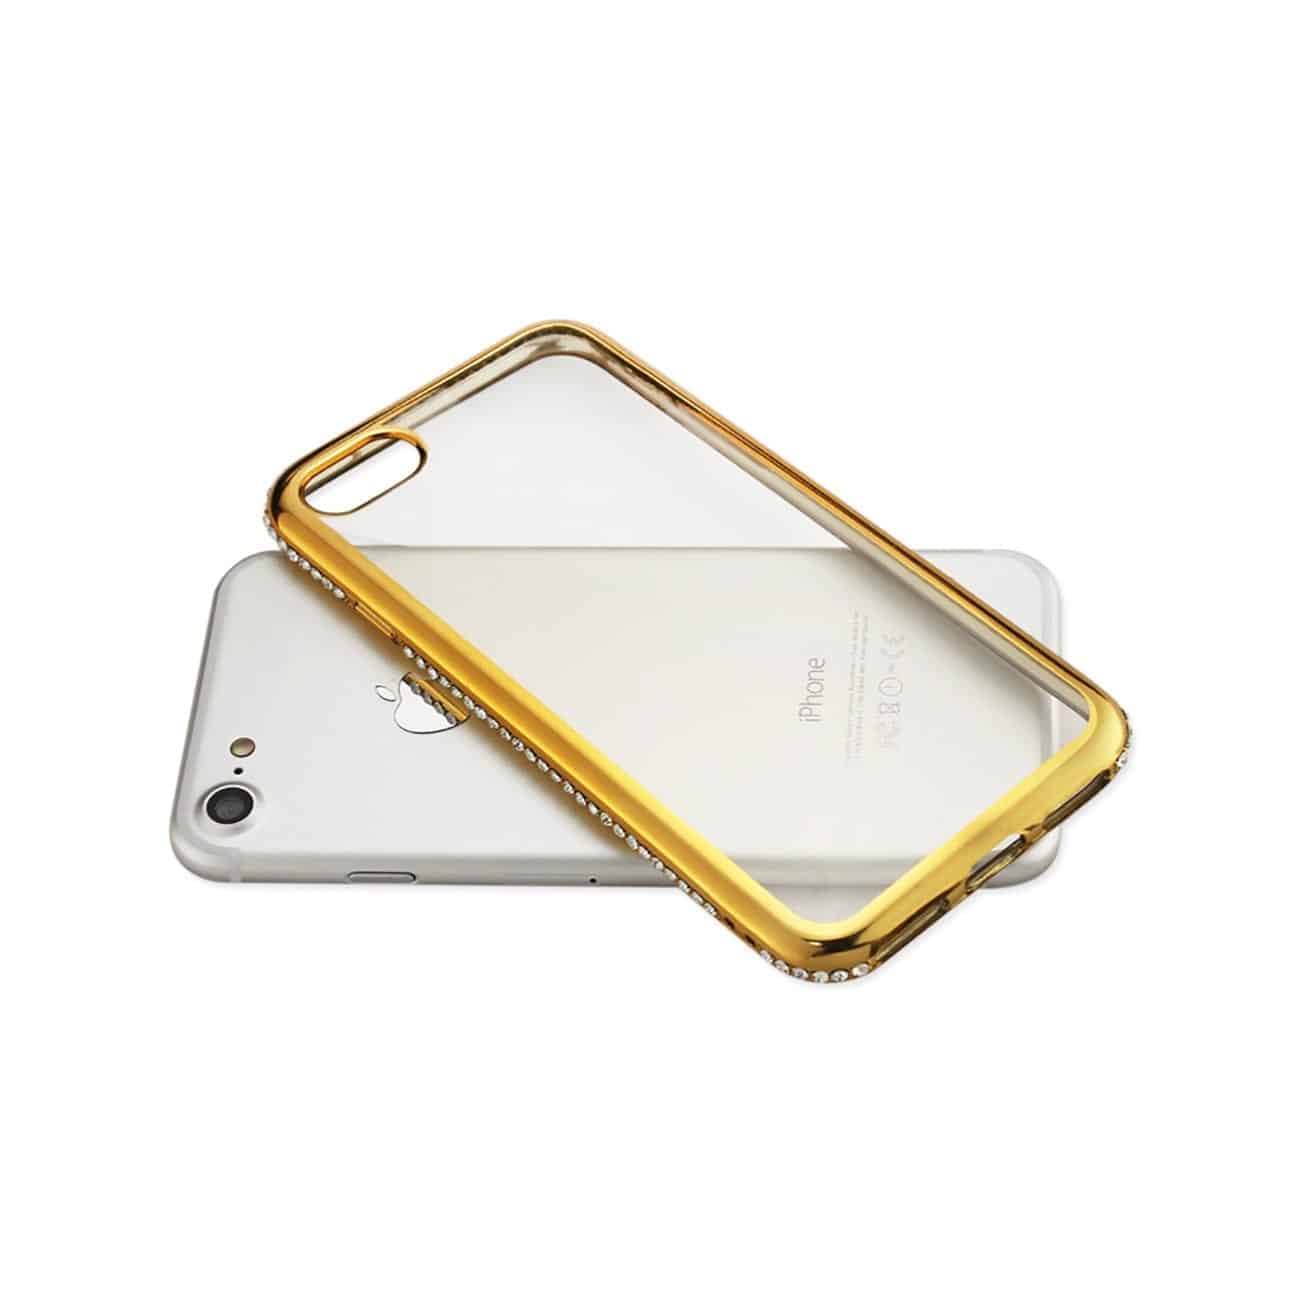 IPHONE 7 SOFT TPU SLIM CLEAR CASE WITH DIAMOND FRAMES IN GOLD